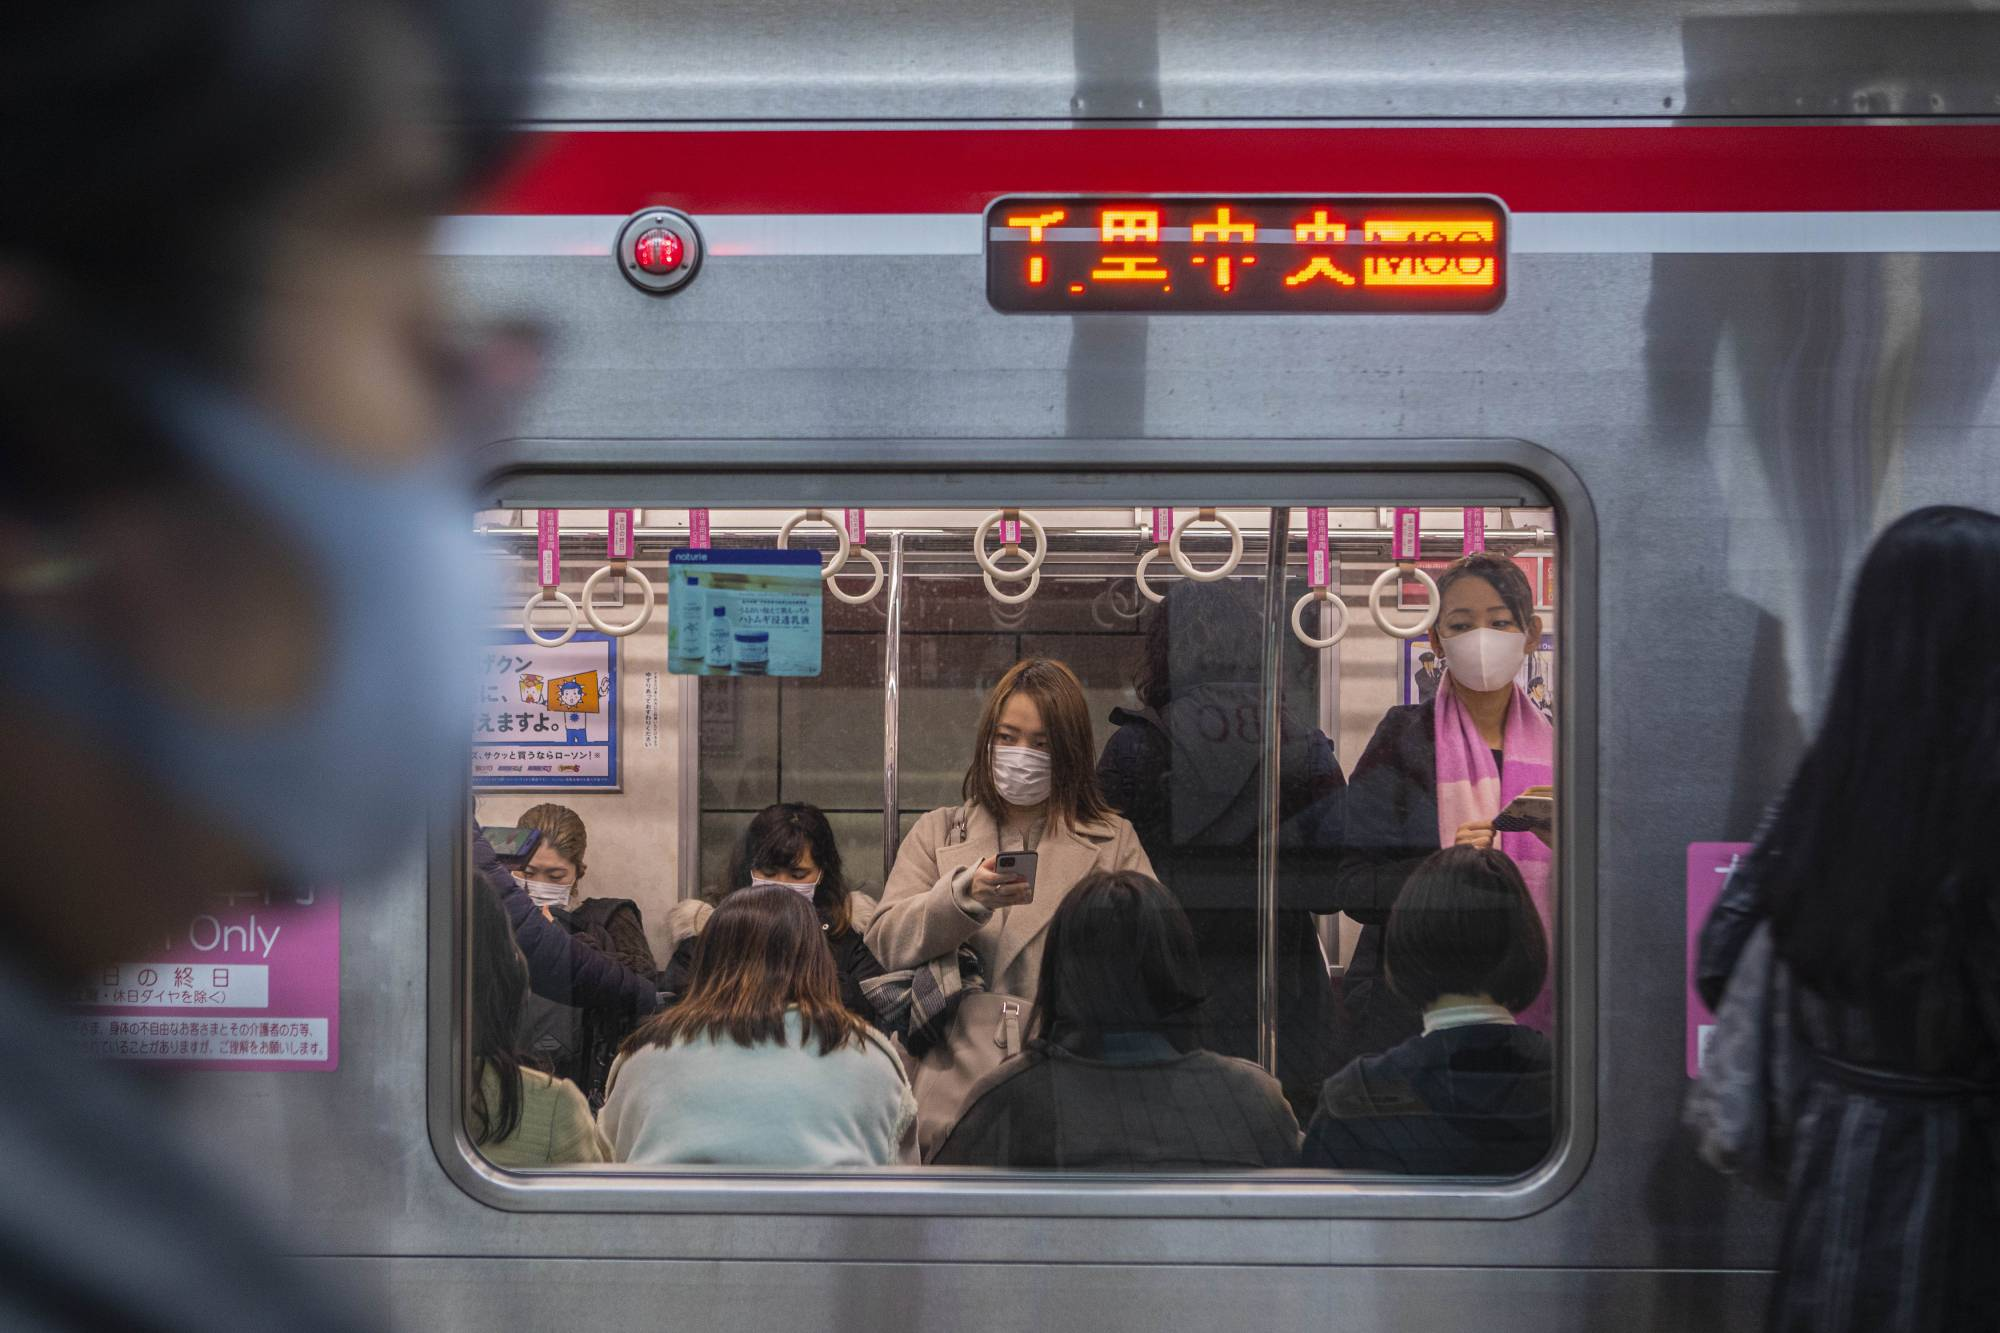 While the pandemic has been difficult for many in Japan, the pressures have been compounded for women. | HIROKO MASUIKE / THE NEW YORK TIMES